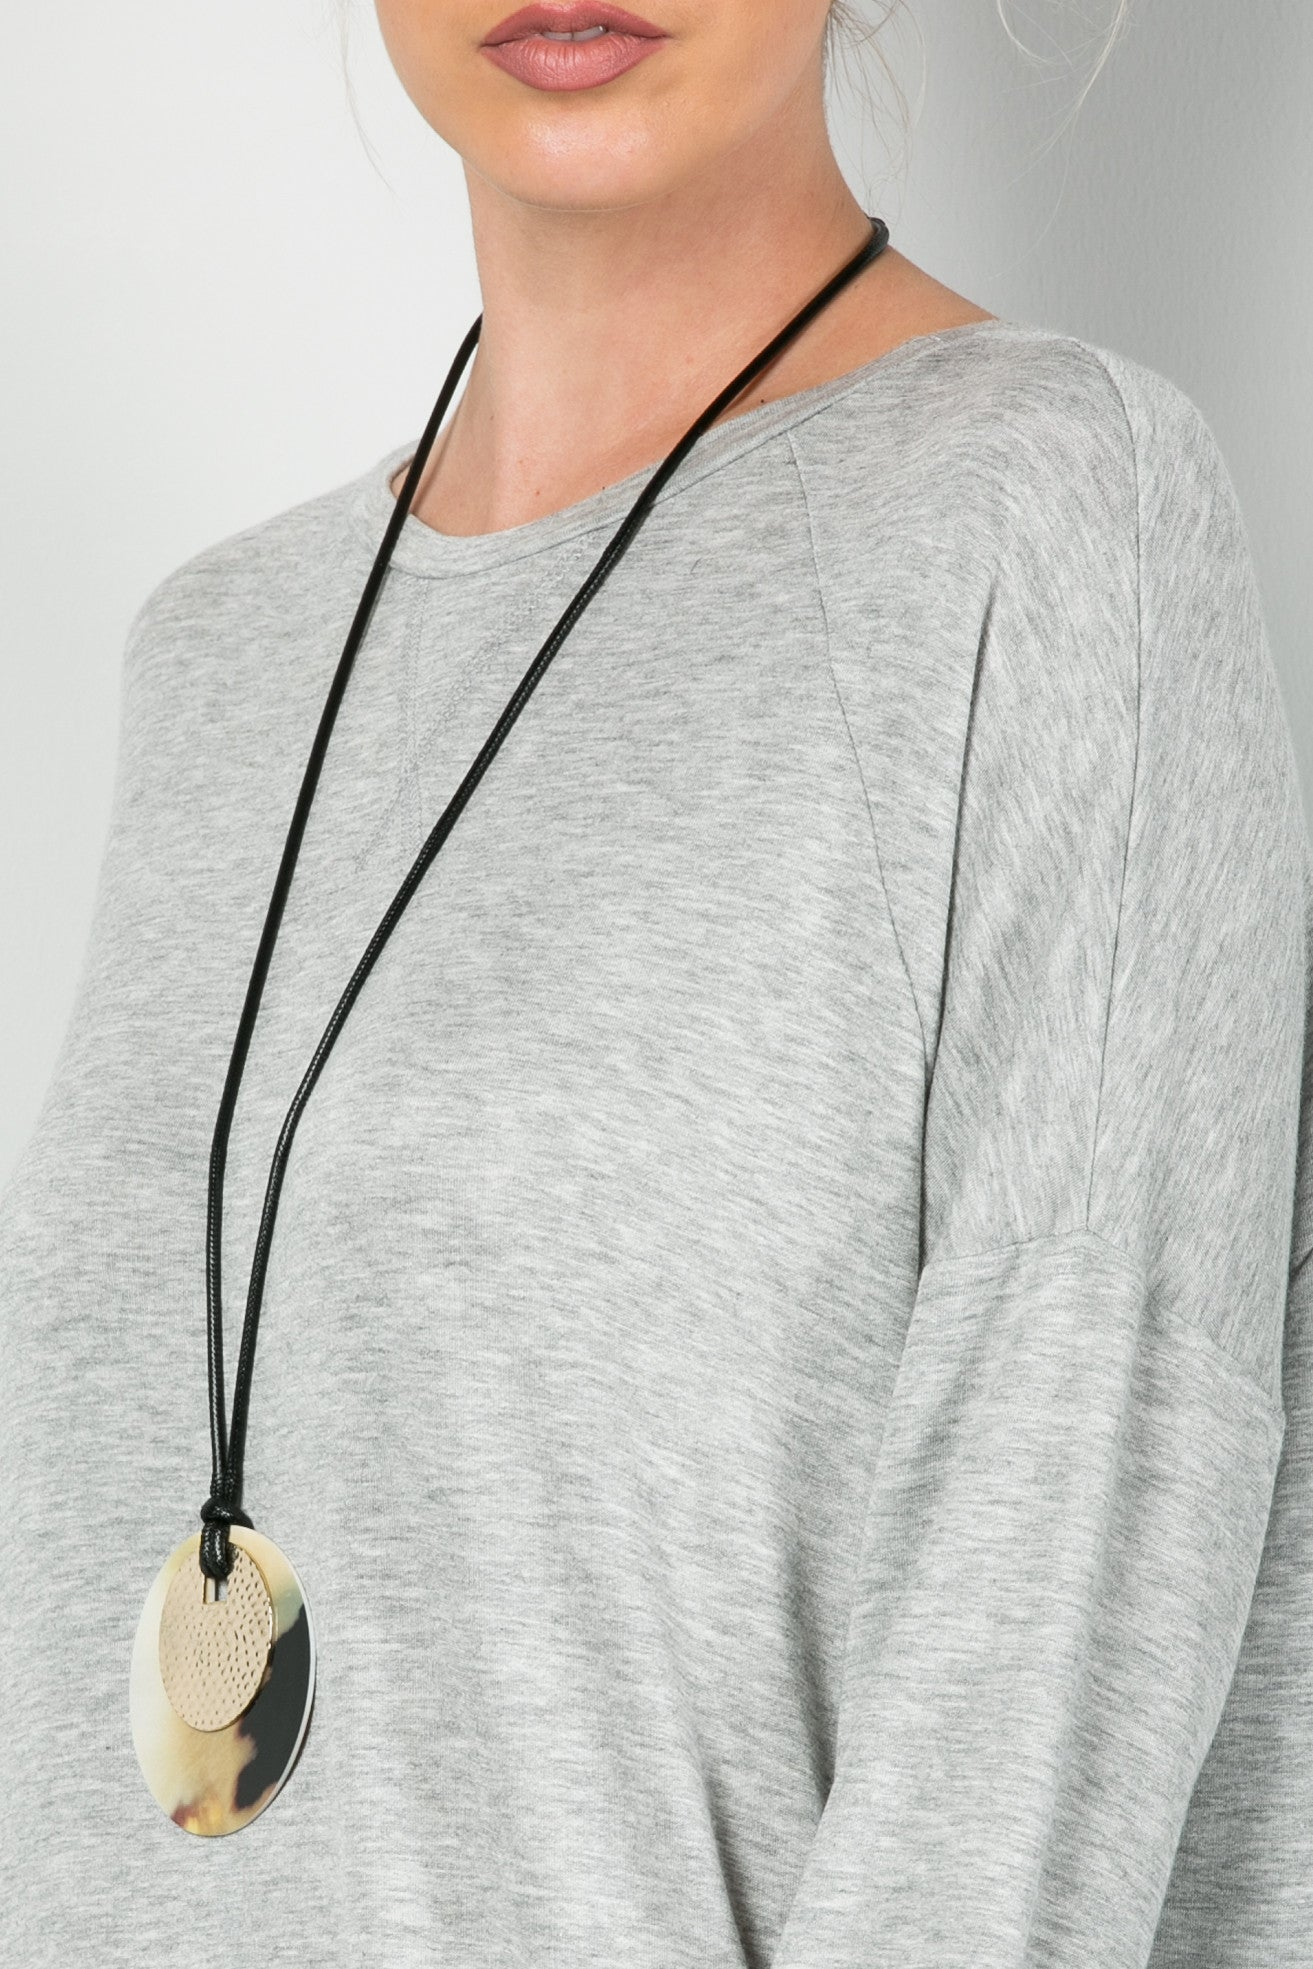 Classic Lazy Top Heather Grey - Tunic - My Yuccie - 4